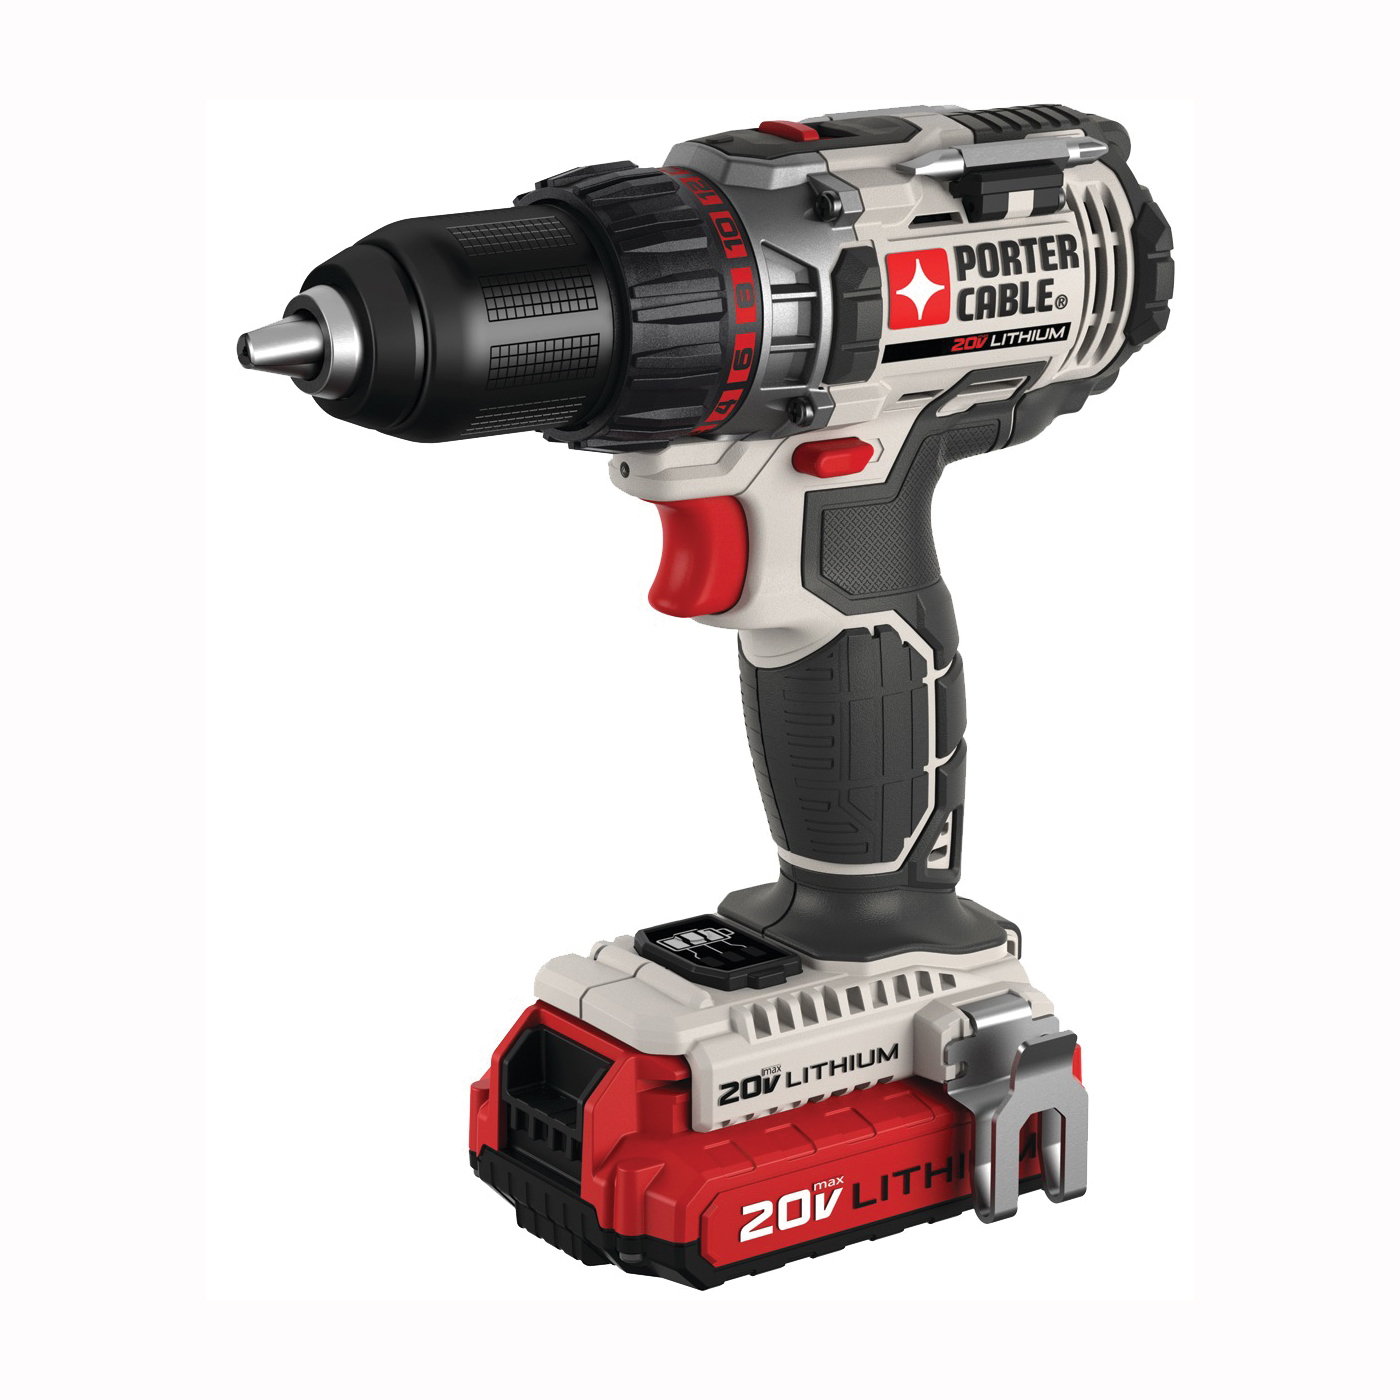 Picture of PORTER-CABLE PCCK600LB Drill/Driver Kit, Kit, 20 V Battery, 1/2 in Chuck, Keyless Chuck, Battery Included: Yes